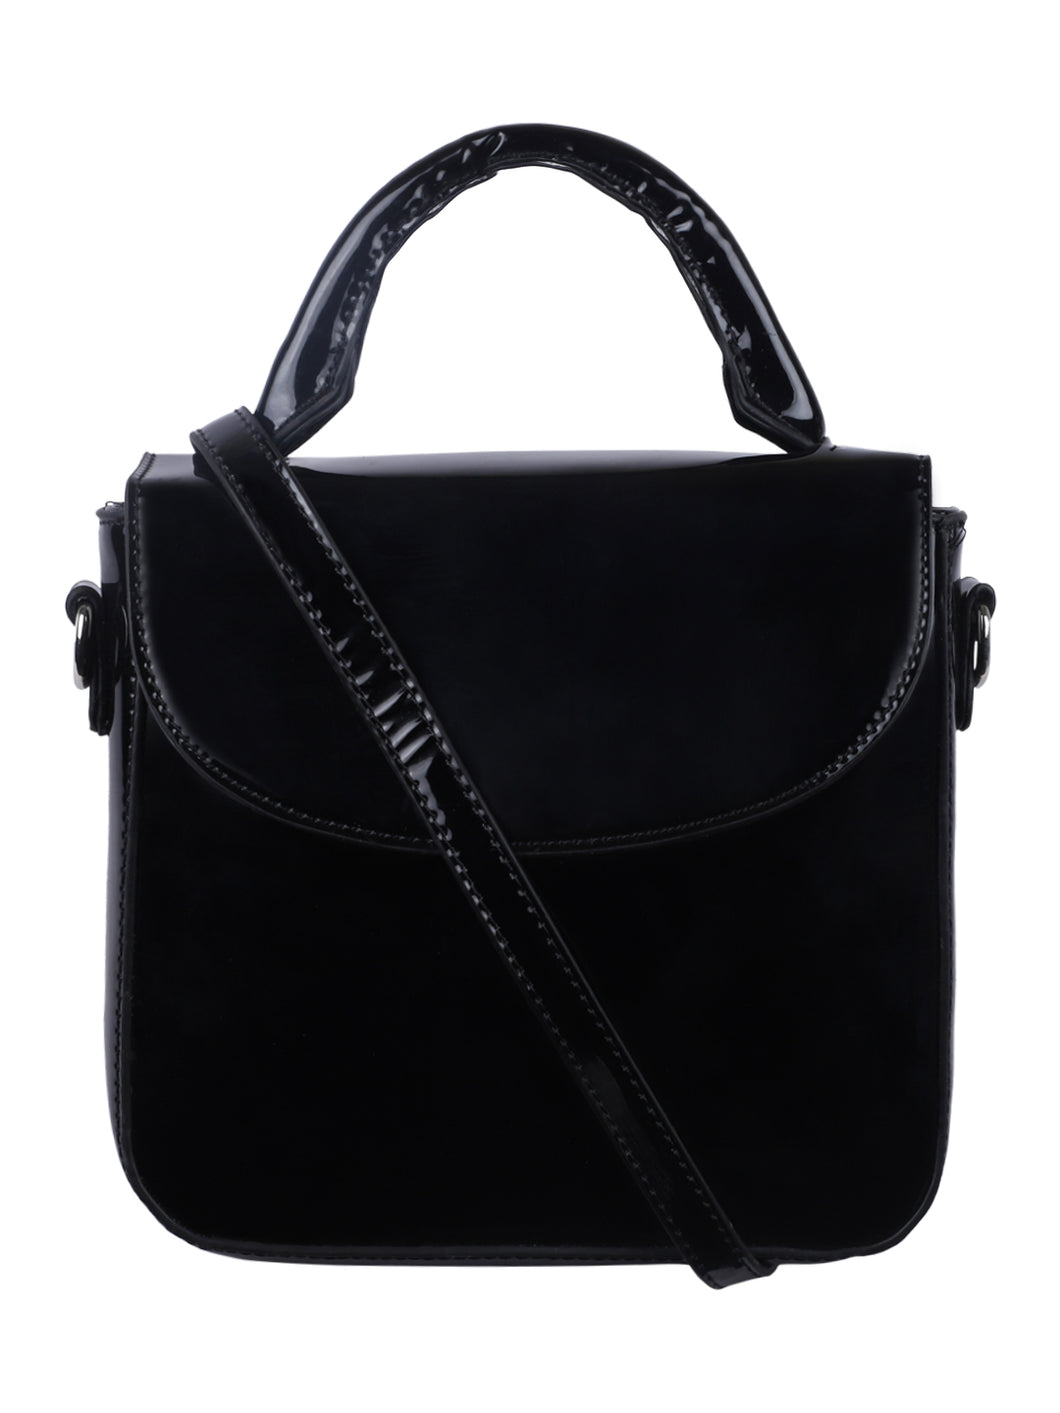 Box Metallic Sling-Black